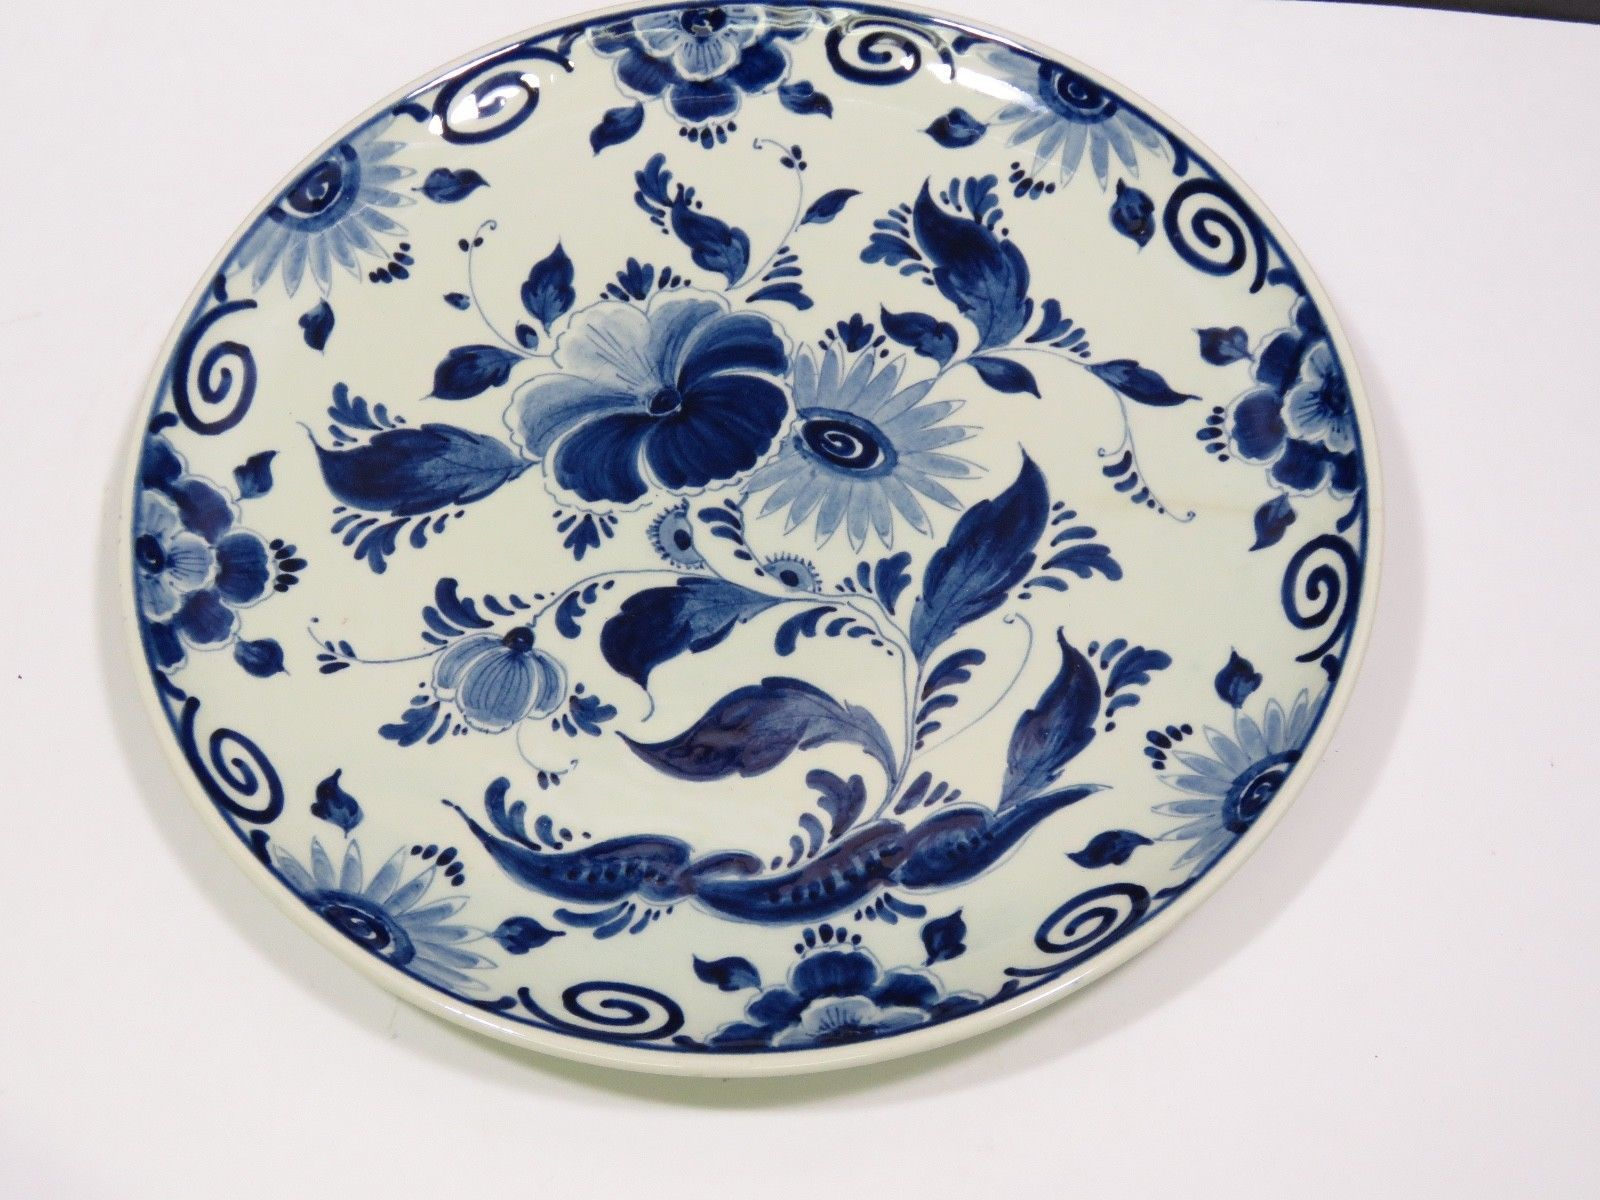 "Primary image for Delfts Blauw Cynia Plate 8.75"" Holland"